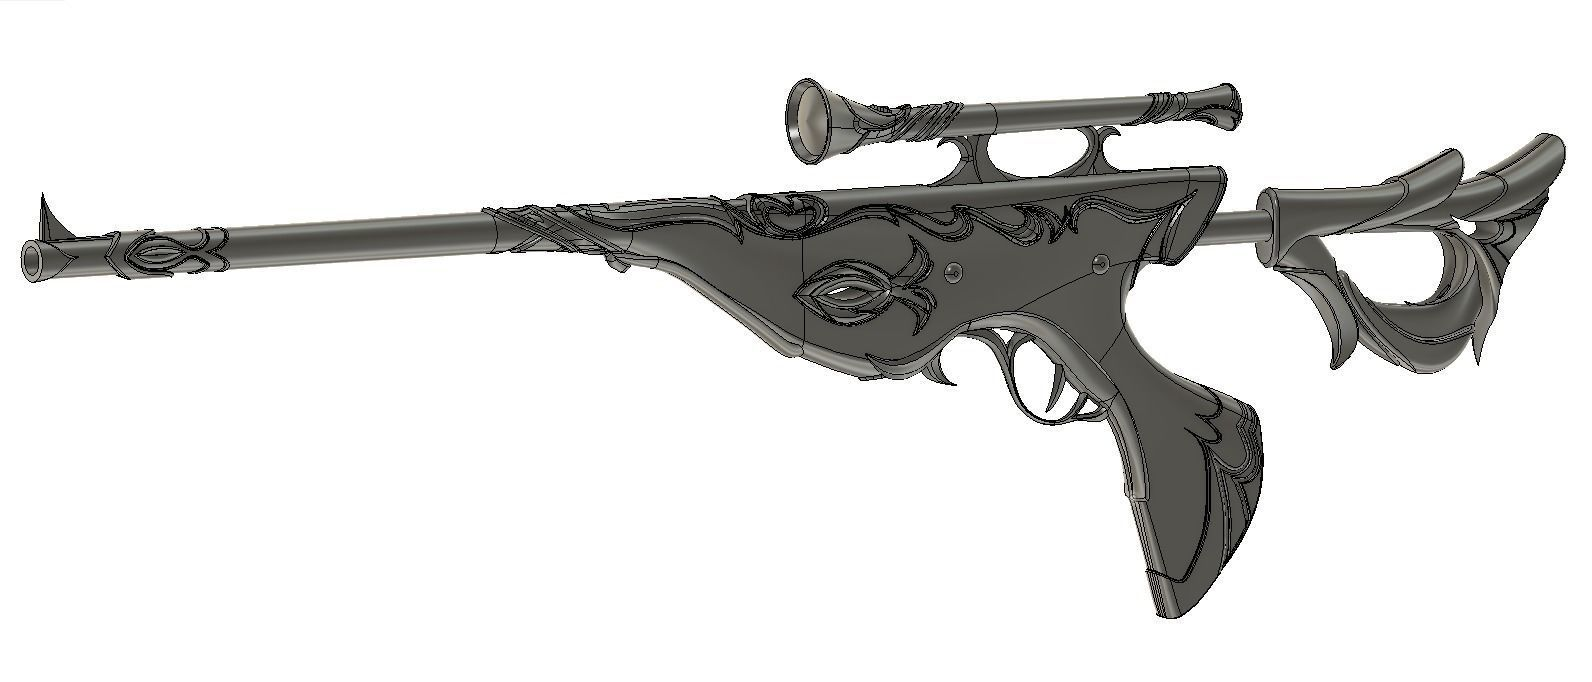 Helluva Boss - Carmine crafted blessing tip Sniper rifle